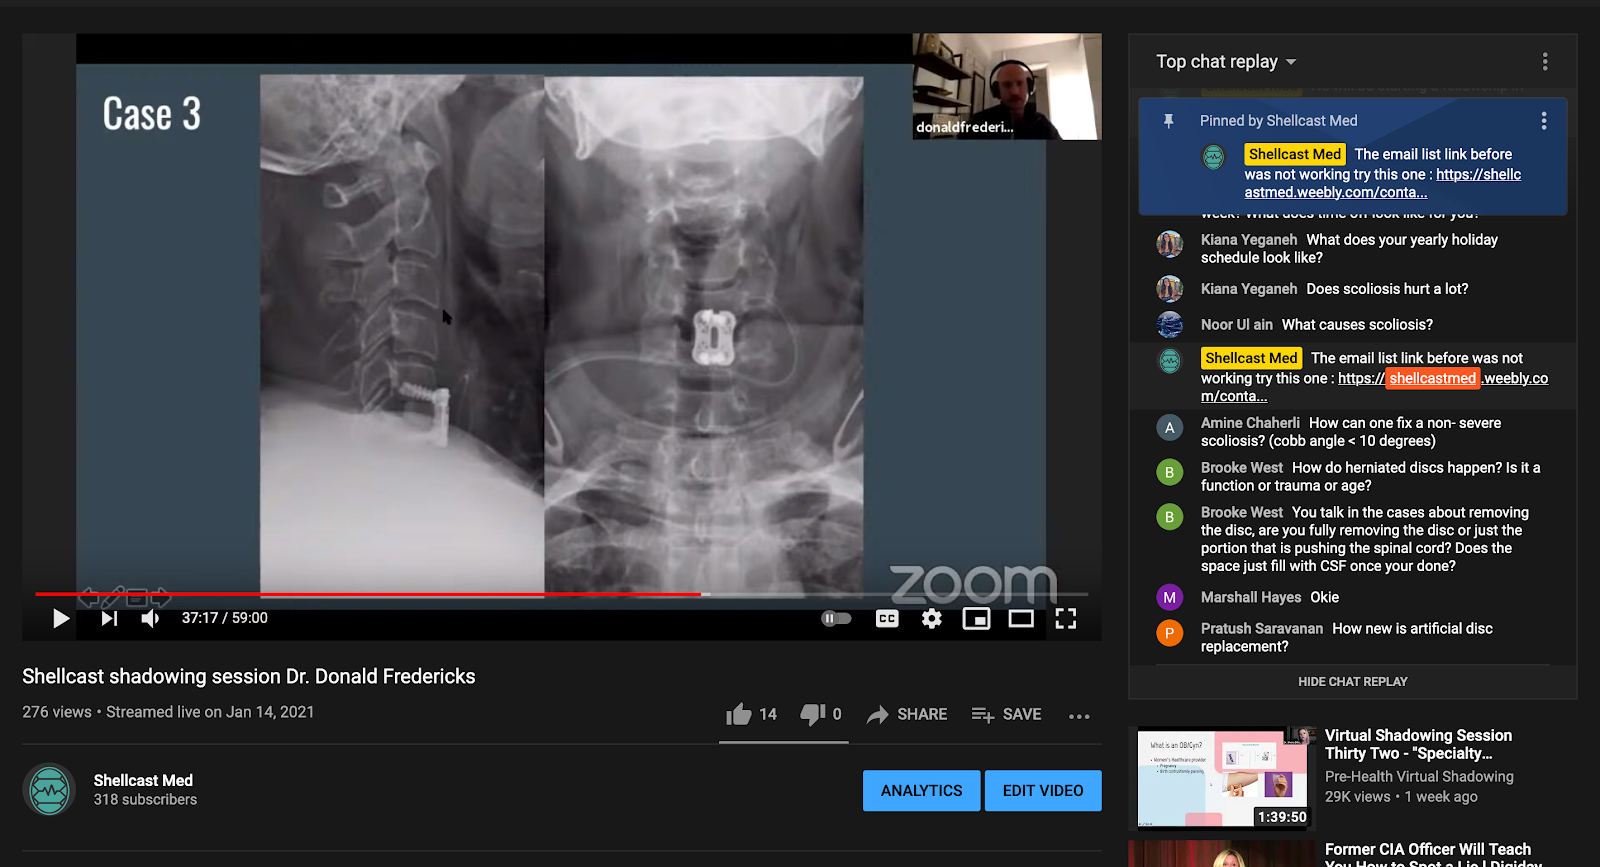 Zoom example of Pre-Medical Students looking at a case